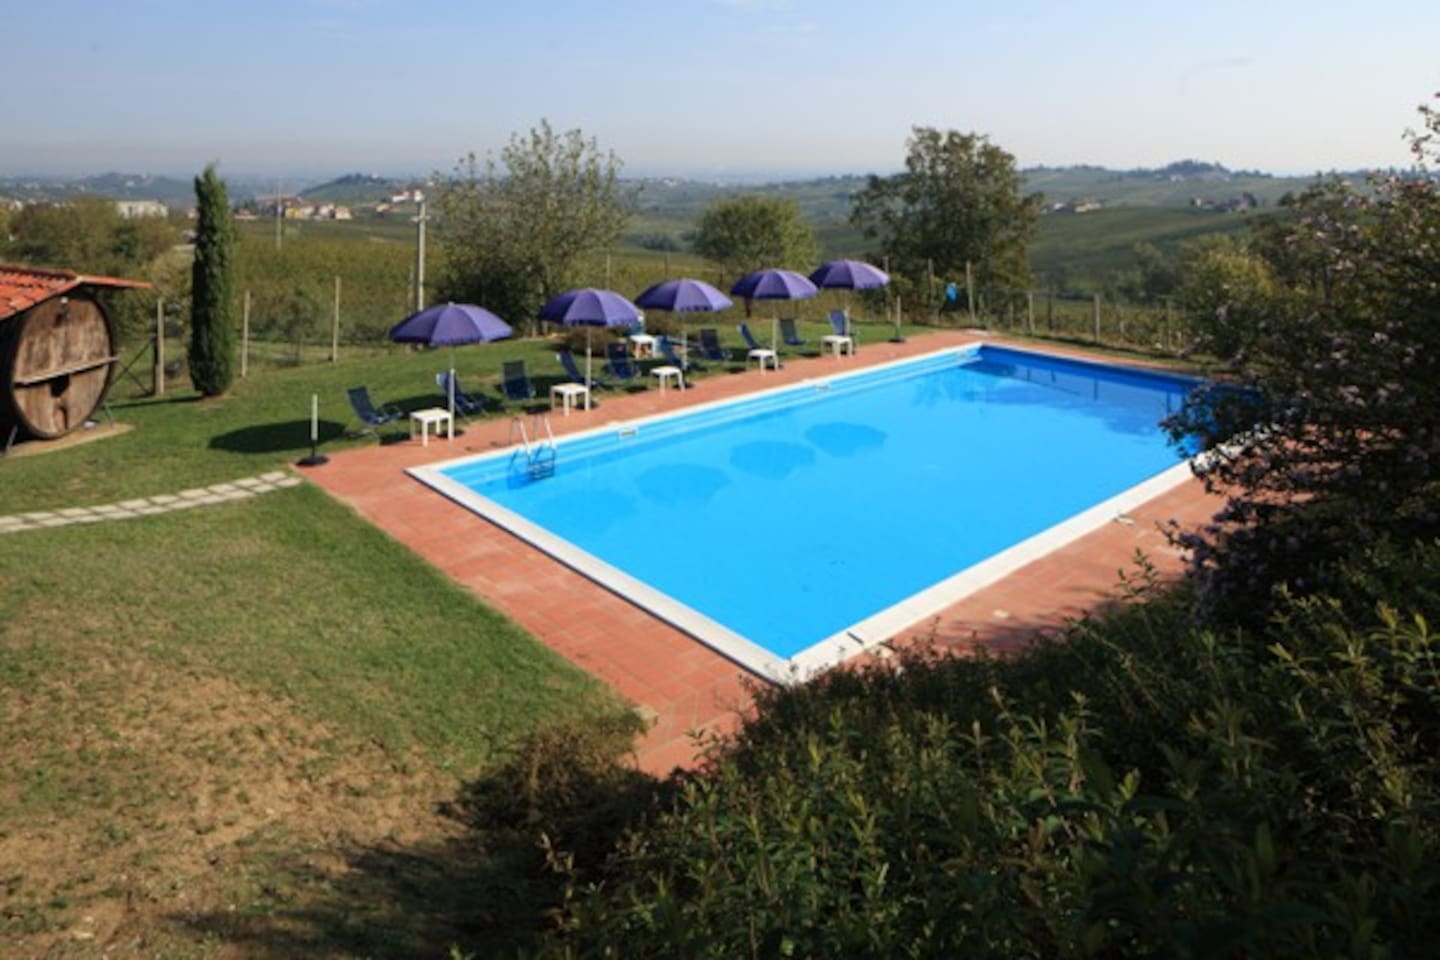 Podere Casale swimming pool